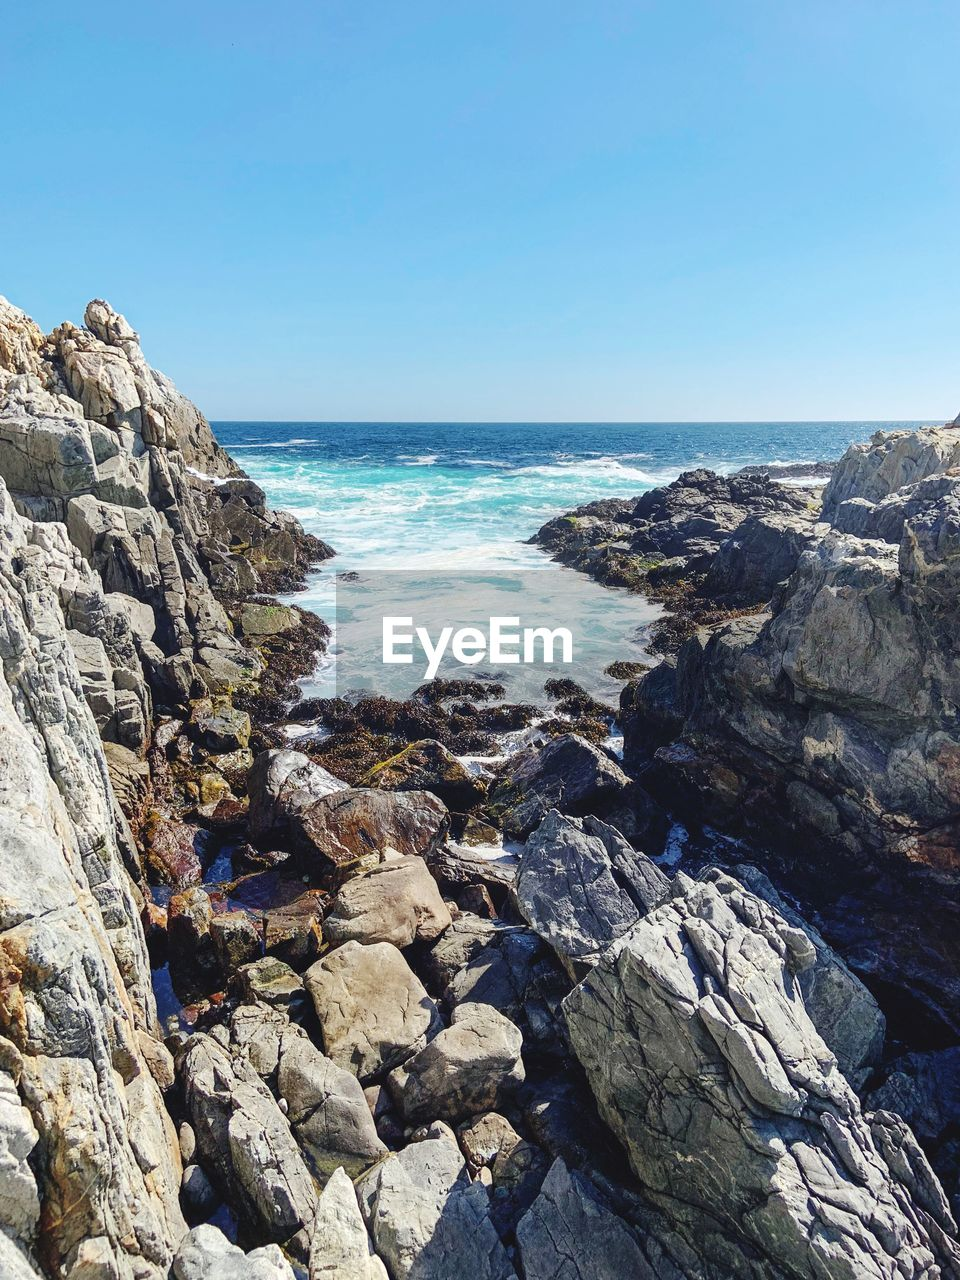 sea, water, rock, sky, solid, rock - object, horizon, horizon over water, beauty in nature, scenics - nature, clear sky, nature, land, beach, day, tranquil scene, blue, tranquility, no people, outdoors, rocky coastline, pebble